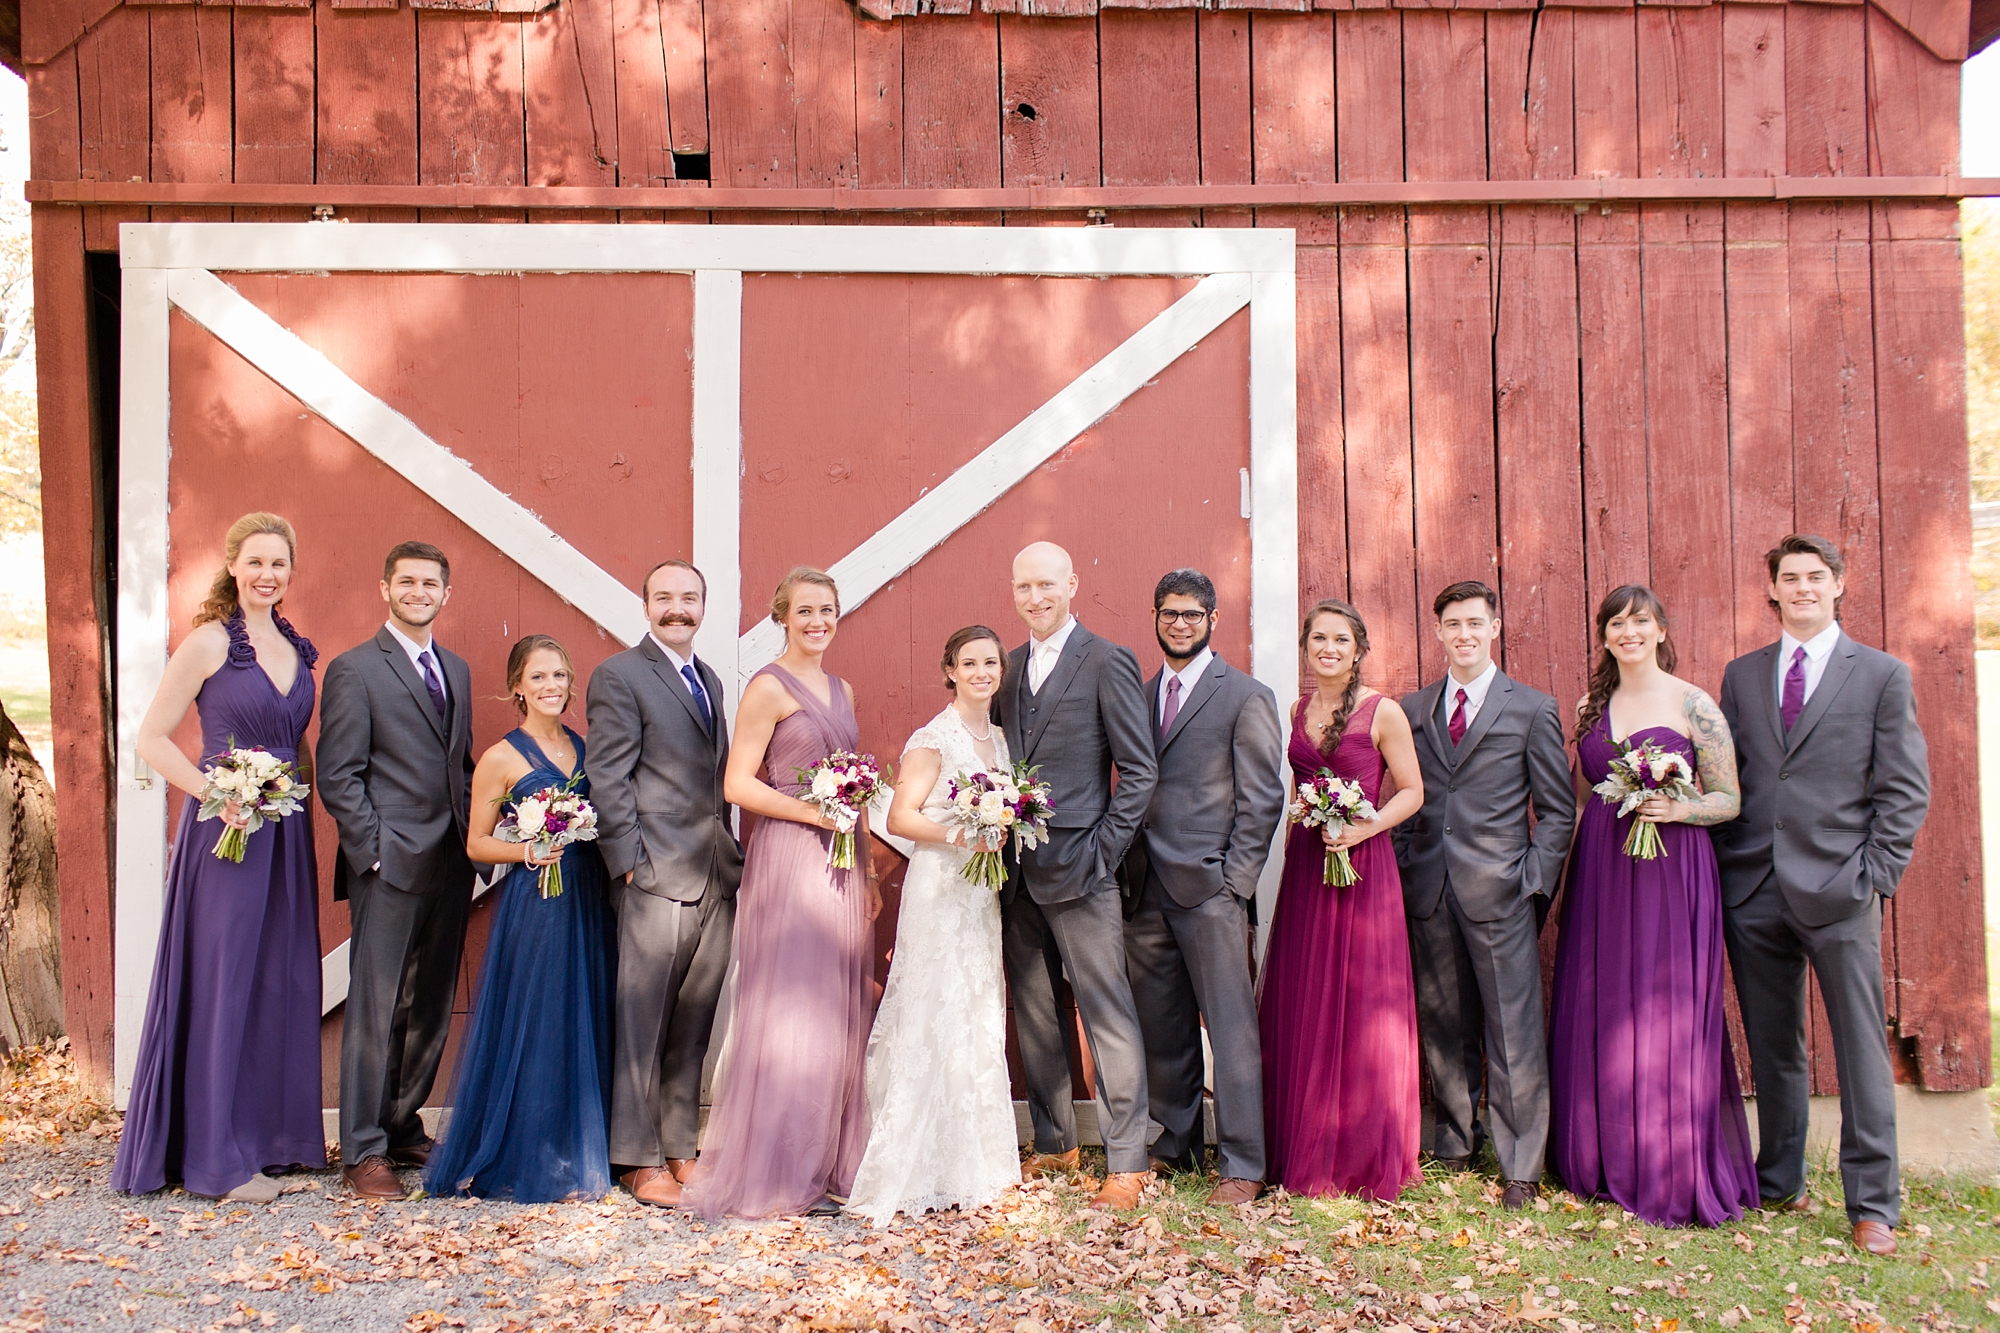 Bird 4. Bridal Party-392_anna grace photography baltimore maryland wedding photographer chanteclaire wedding photo.jpg